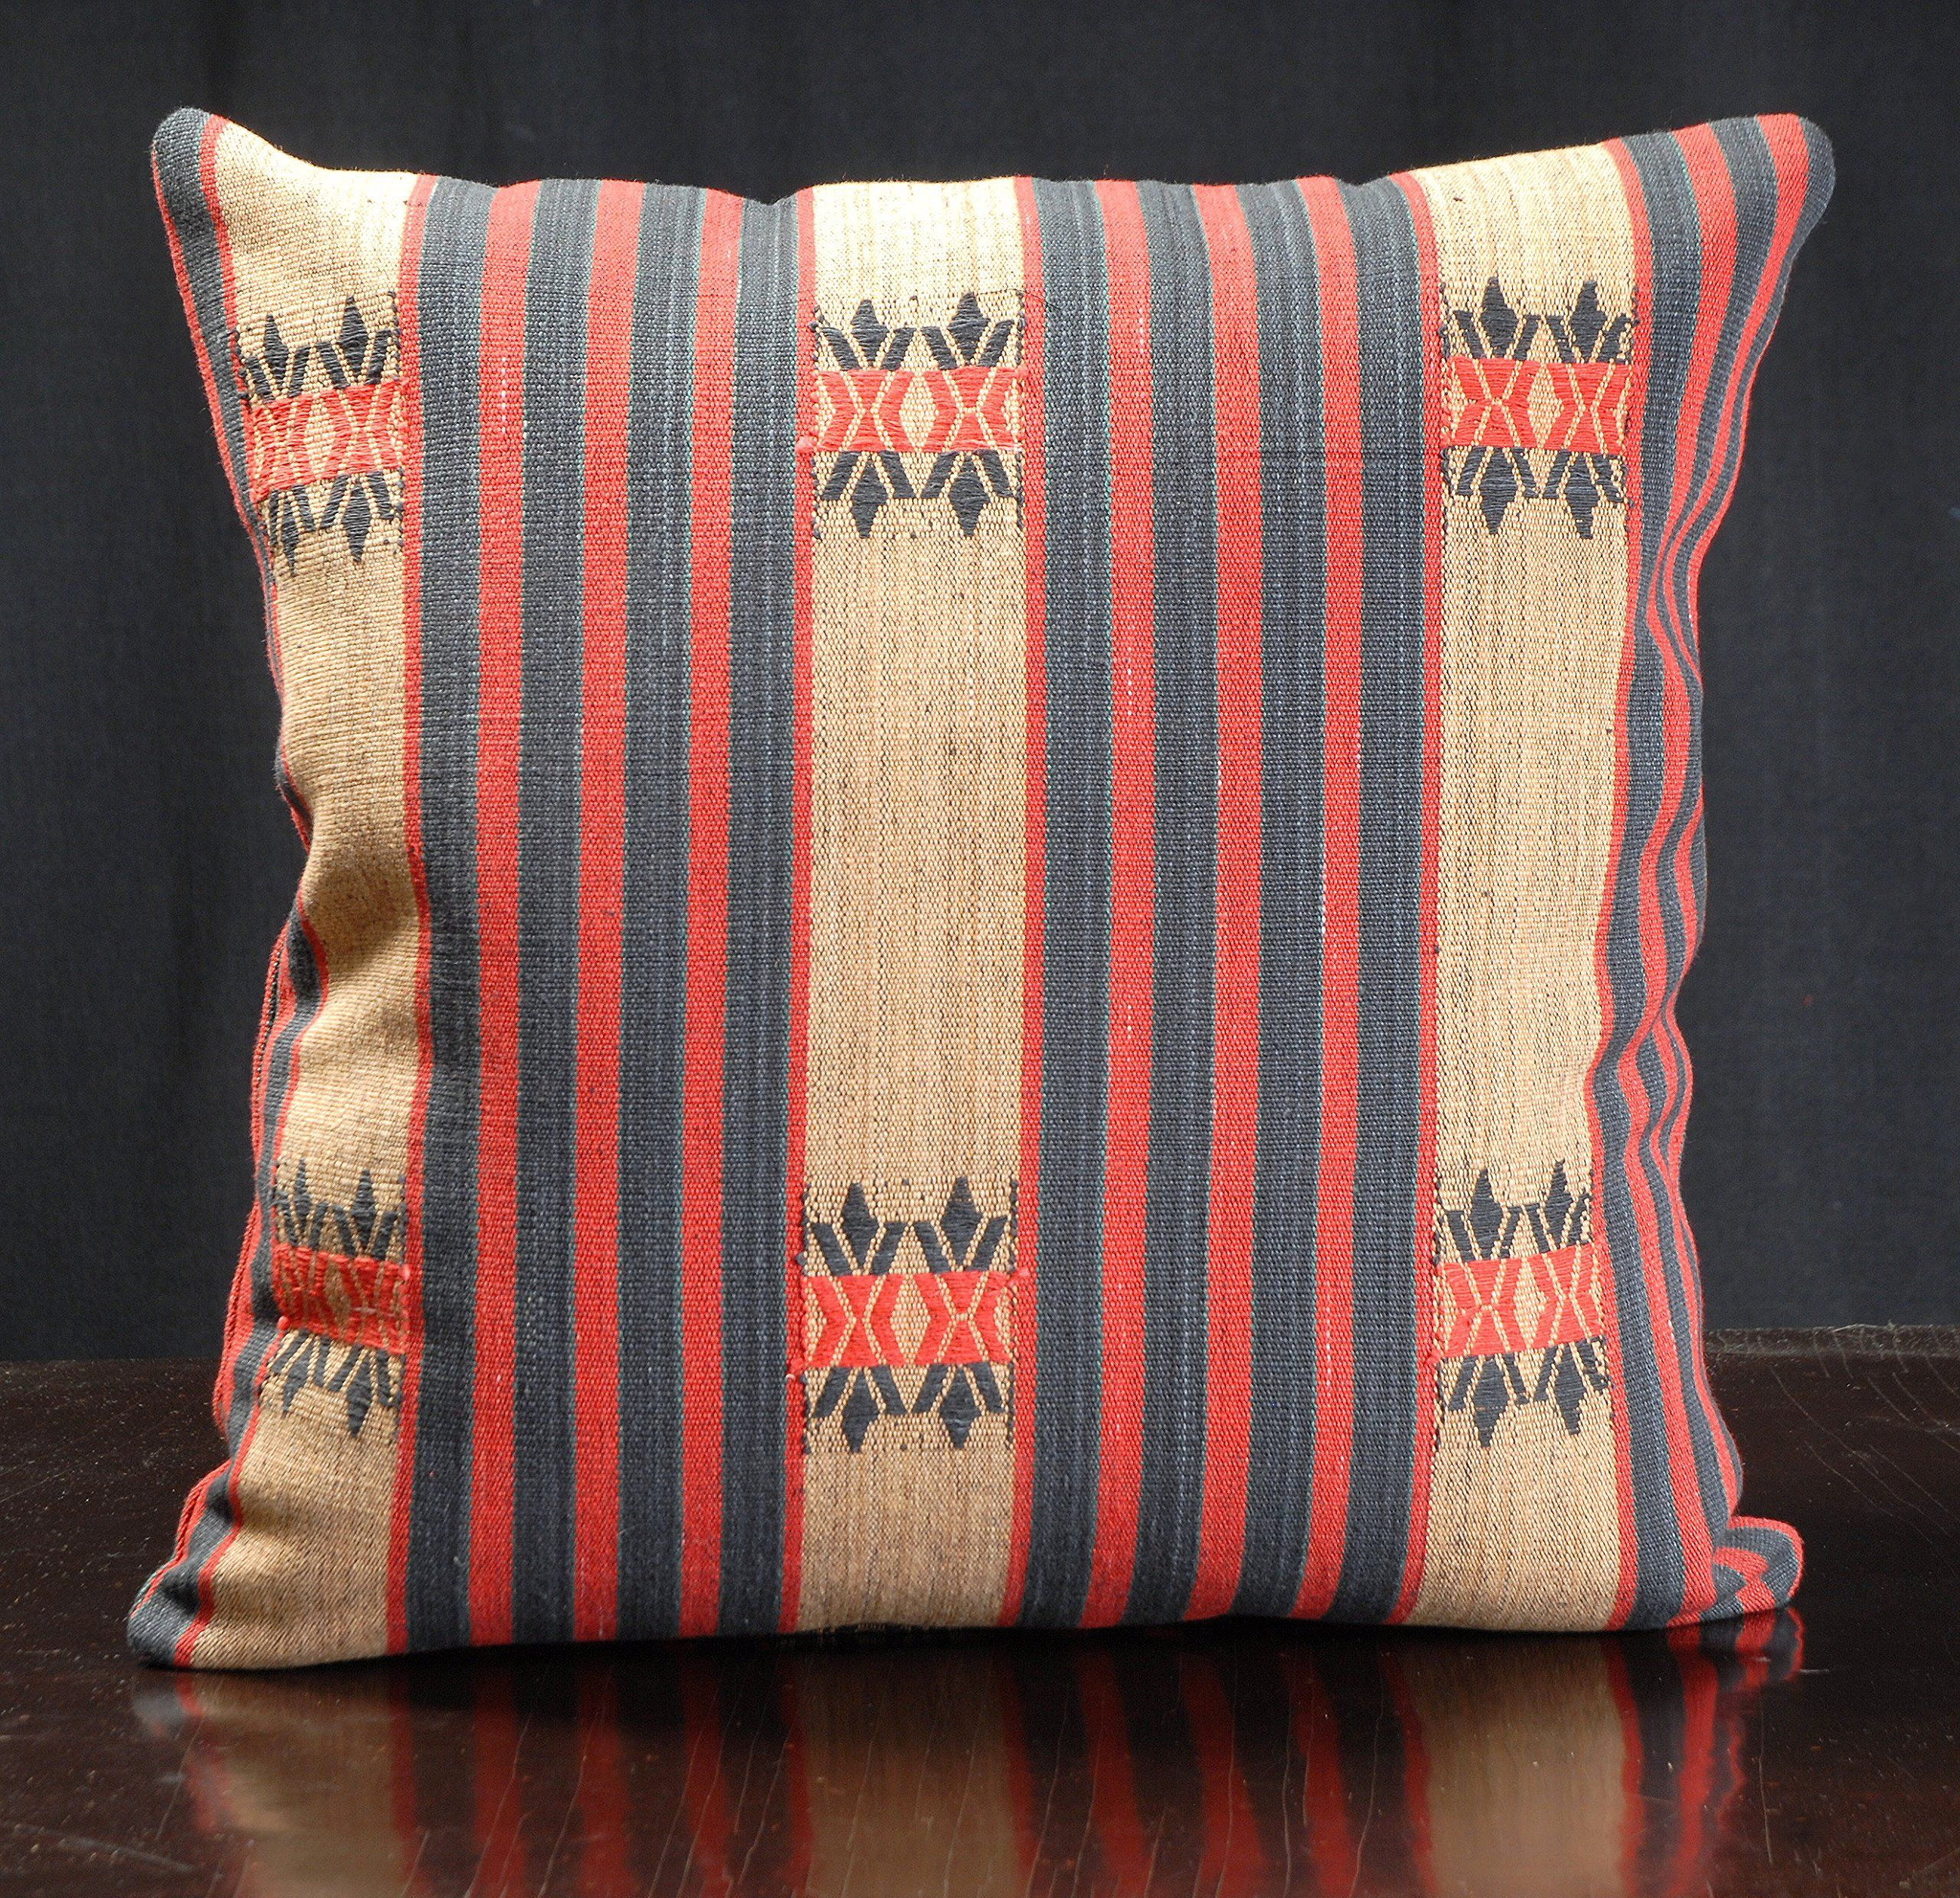 Home decor 18 x 18 inch decorative throw pillow traditional Naga ...